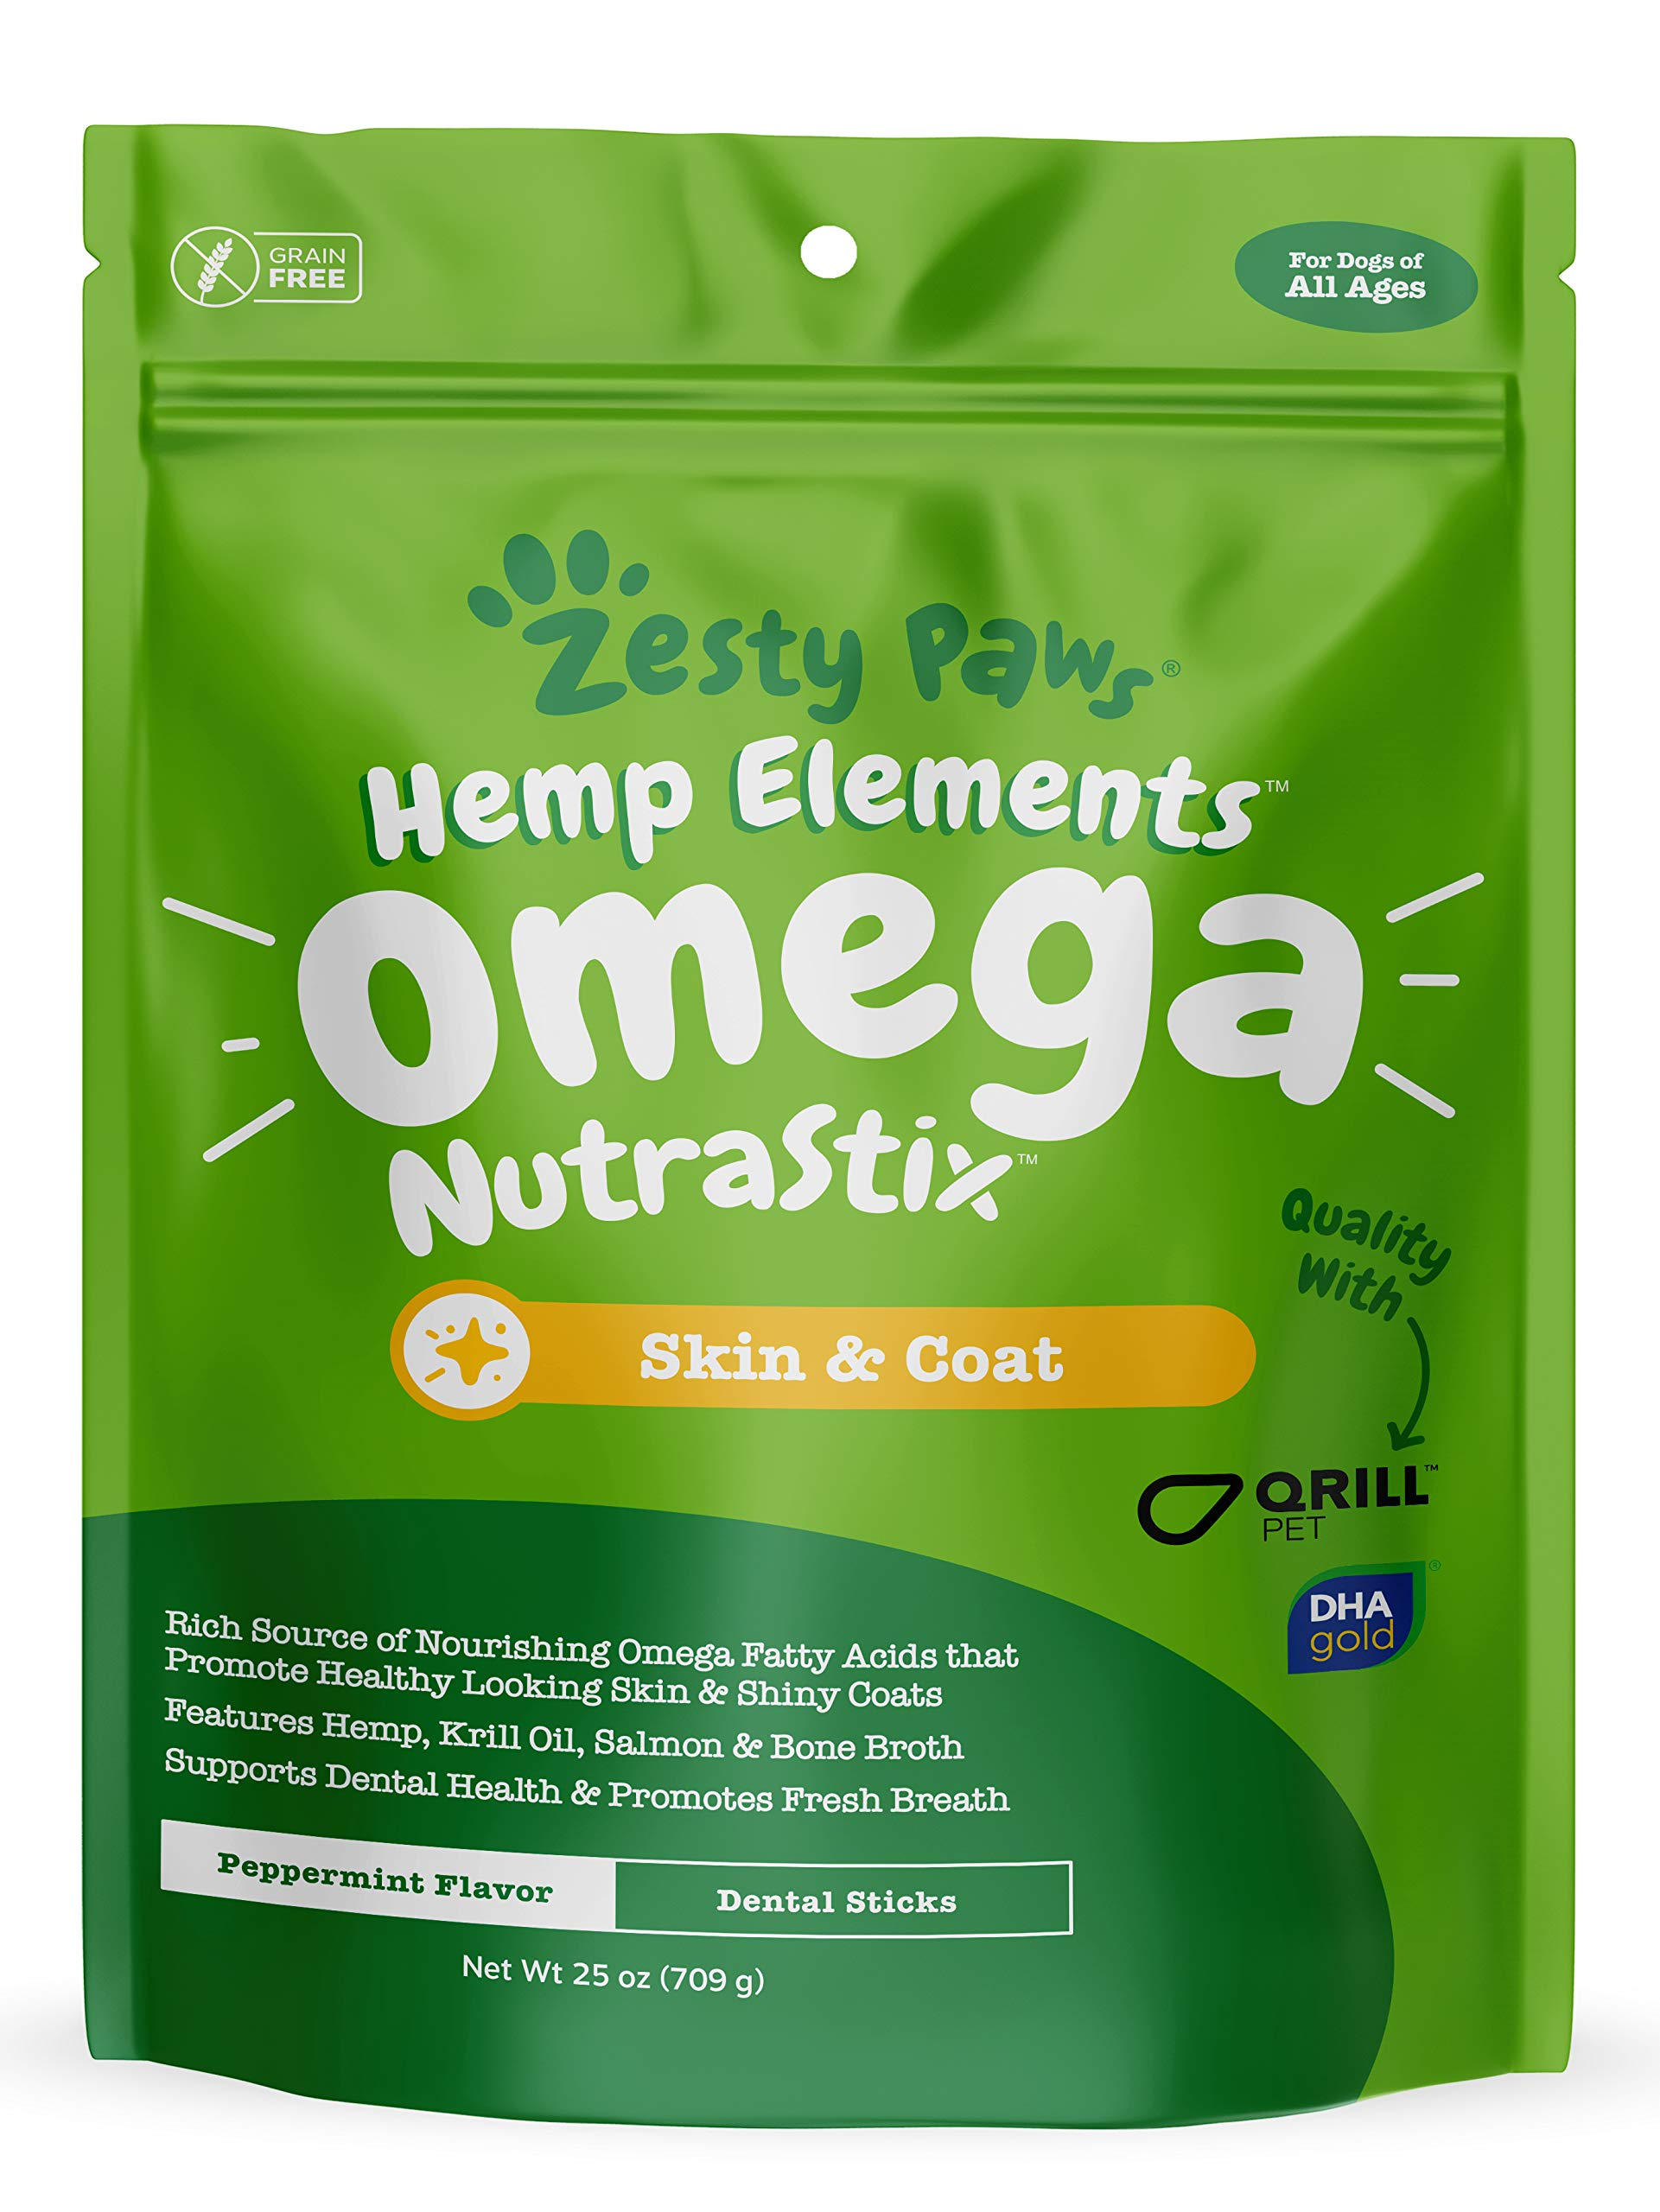 Omega 3 Dental Sticks for Dogs - With Hemp, Salmon, Krill Oil & Bone Broth - Anti Itch Skin & Coat Care + Hip & Joint Health - Heart & Immune System Support - Dog Tartar Teeth Cleaning Treats (25oz) by Zesty Paws